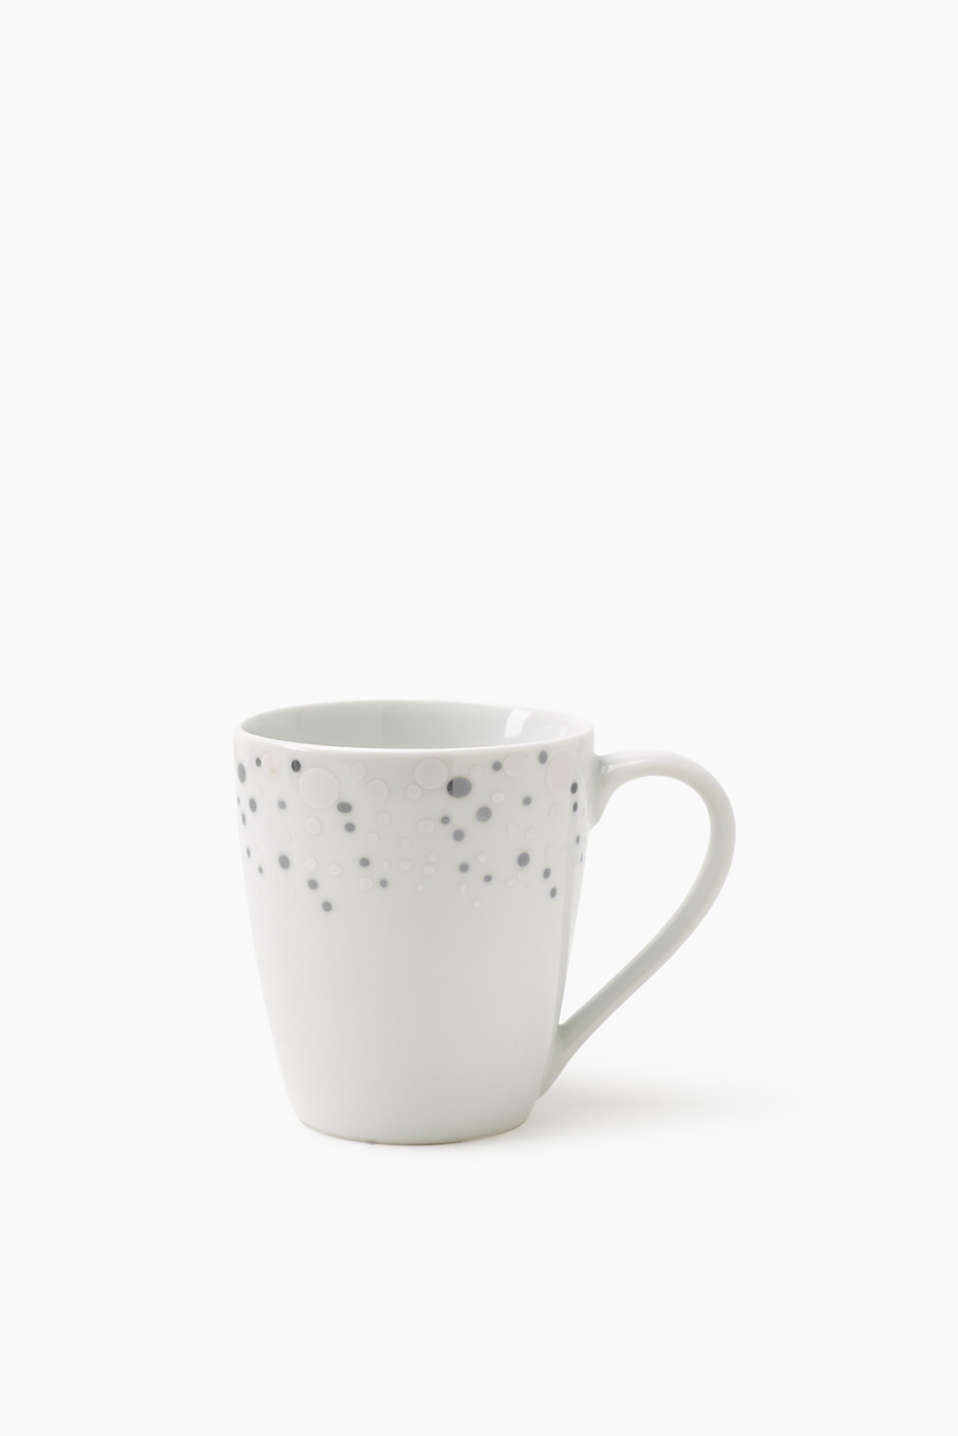 Esprit - Ceramic mug with polka dots